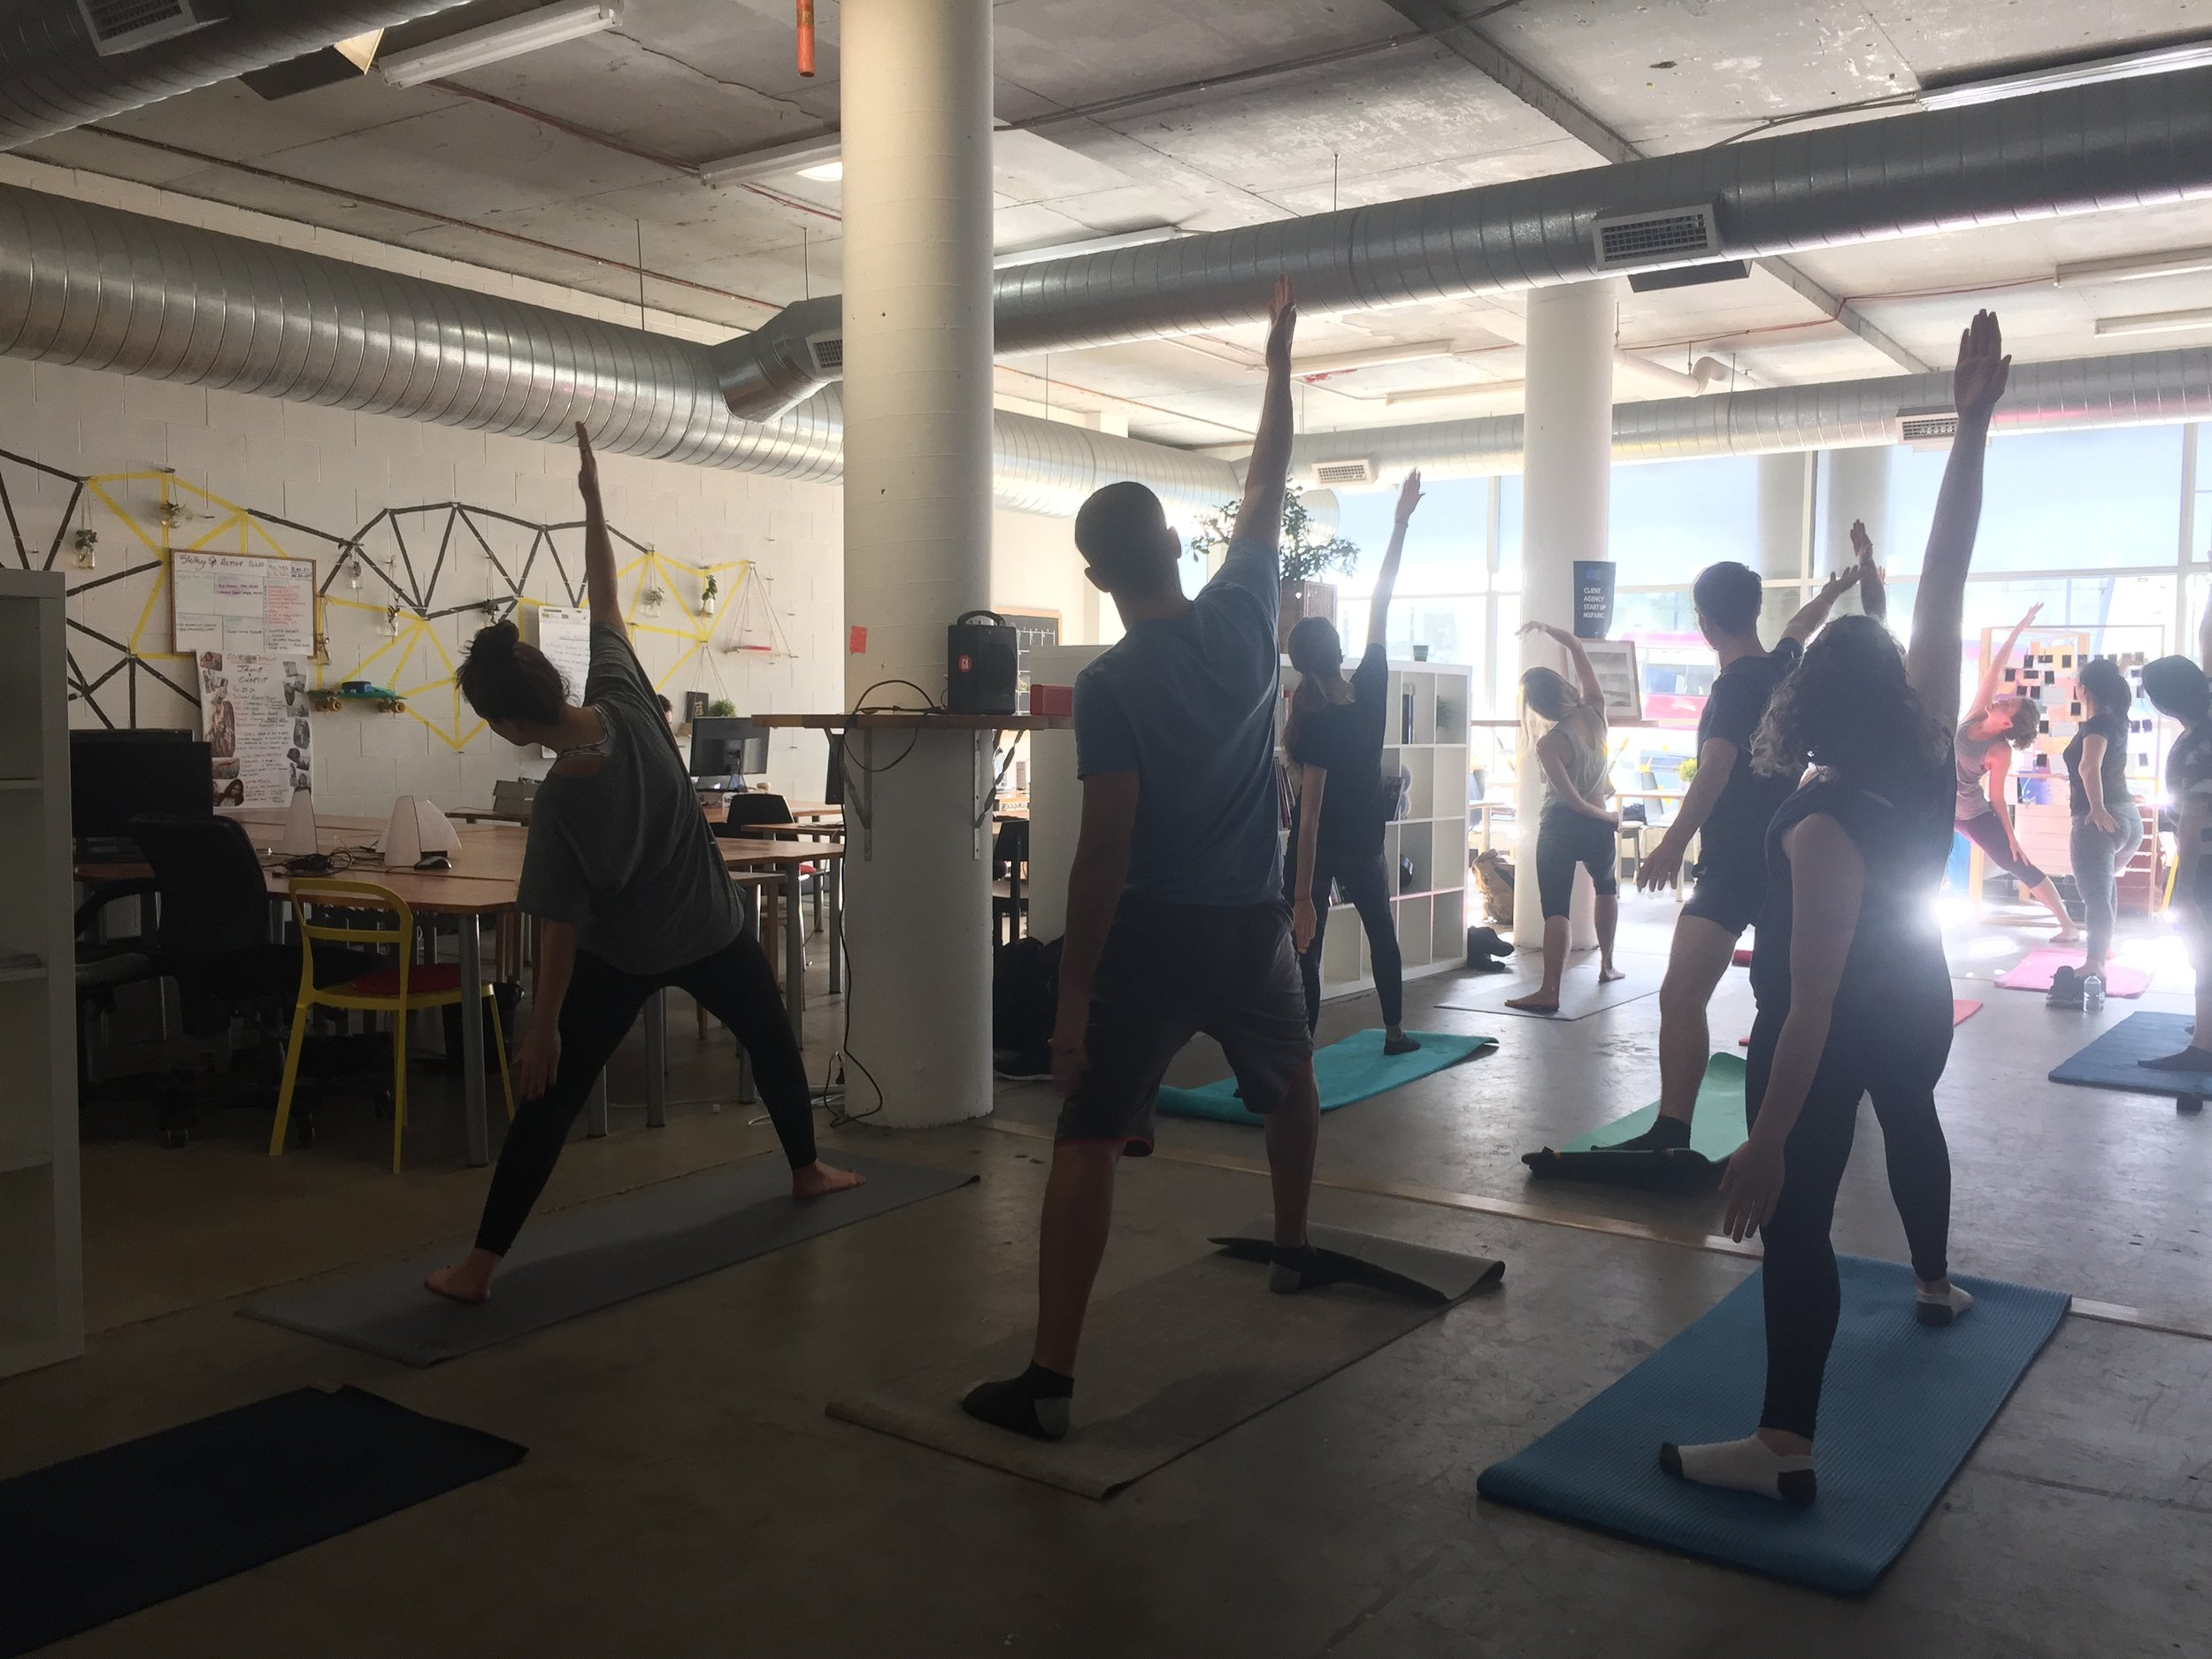 Experience leading corporate yoga and mindfulness classes to participants of all-levels